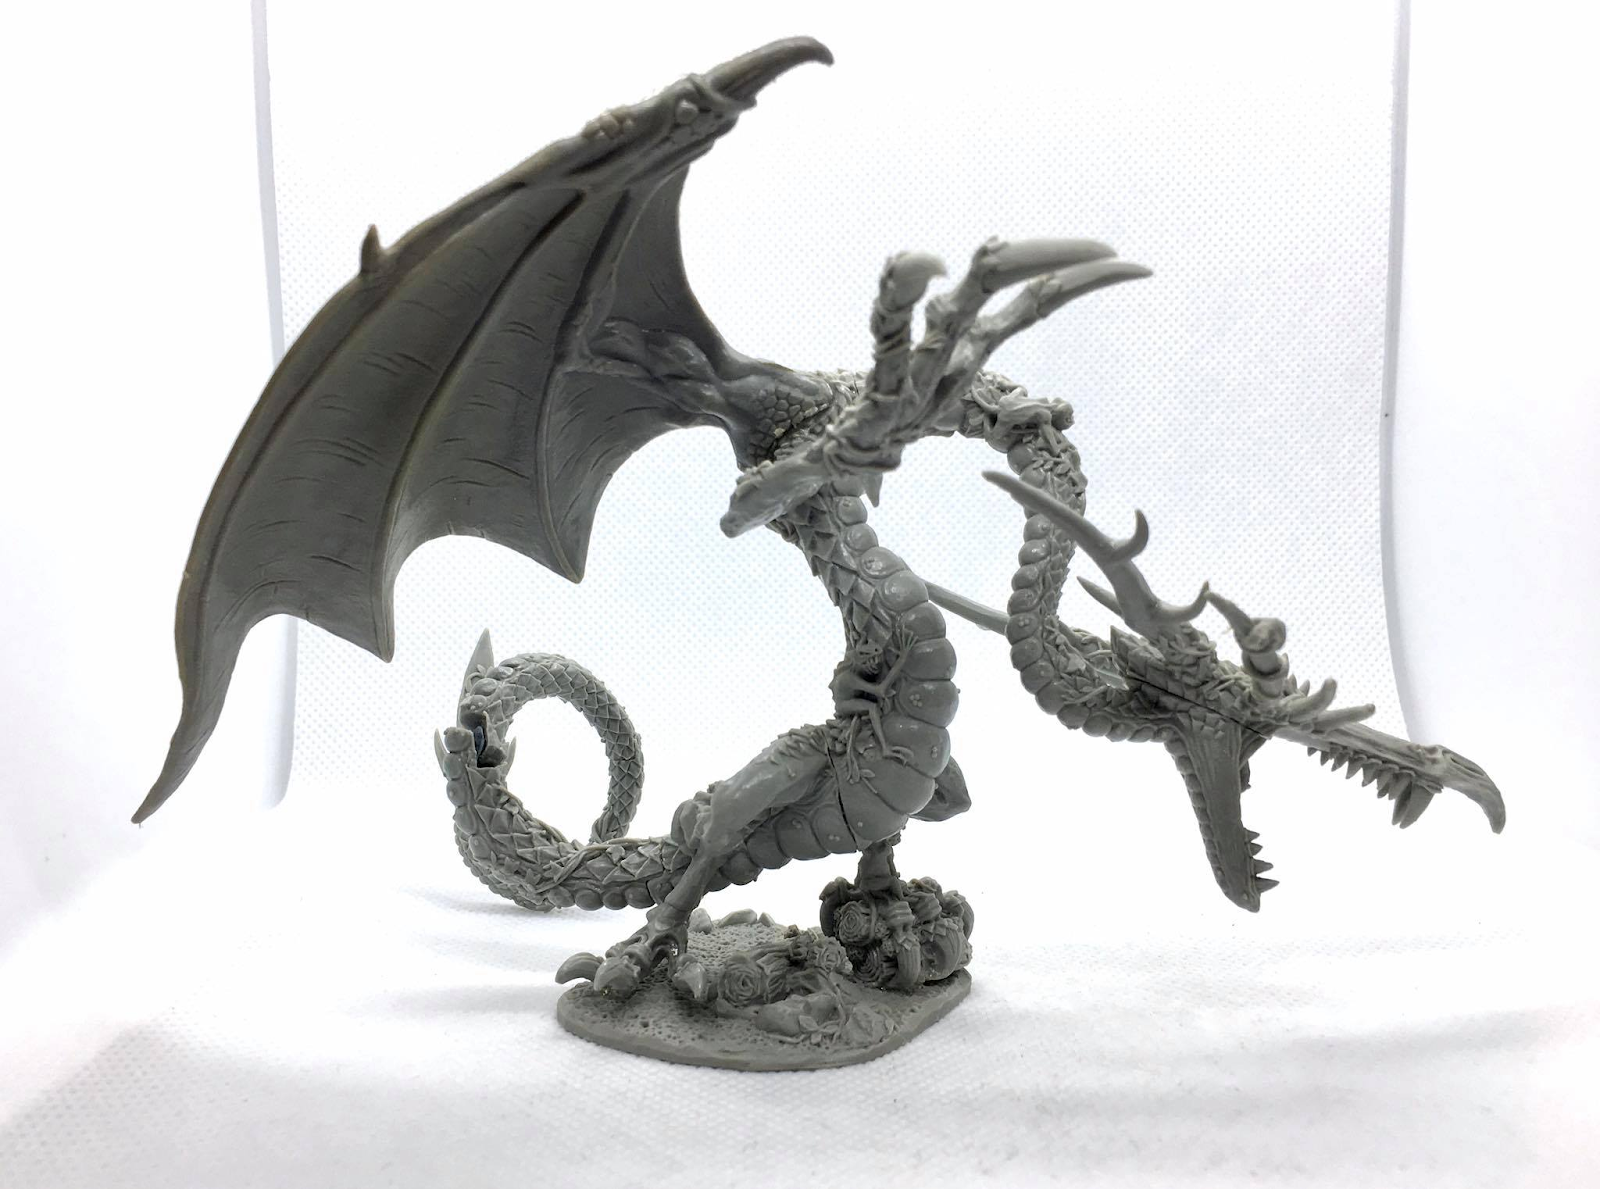 A dragon miniature sculpted by Trish Carden